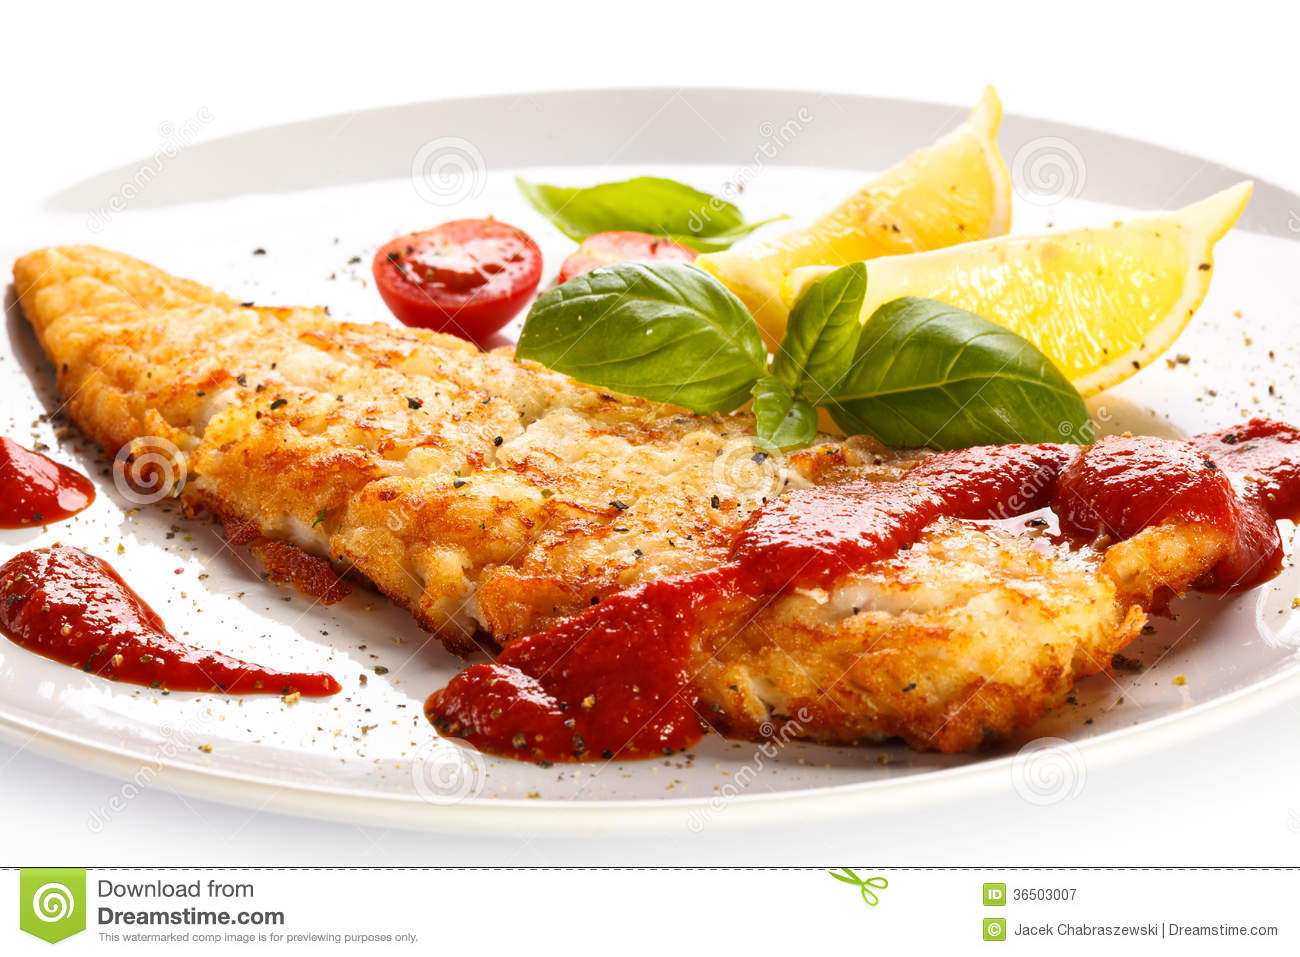 Fried fish fillet royalty free stock photography image for Fried fish calories